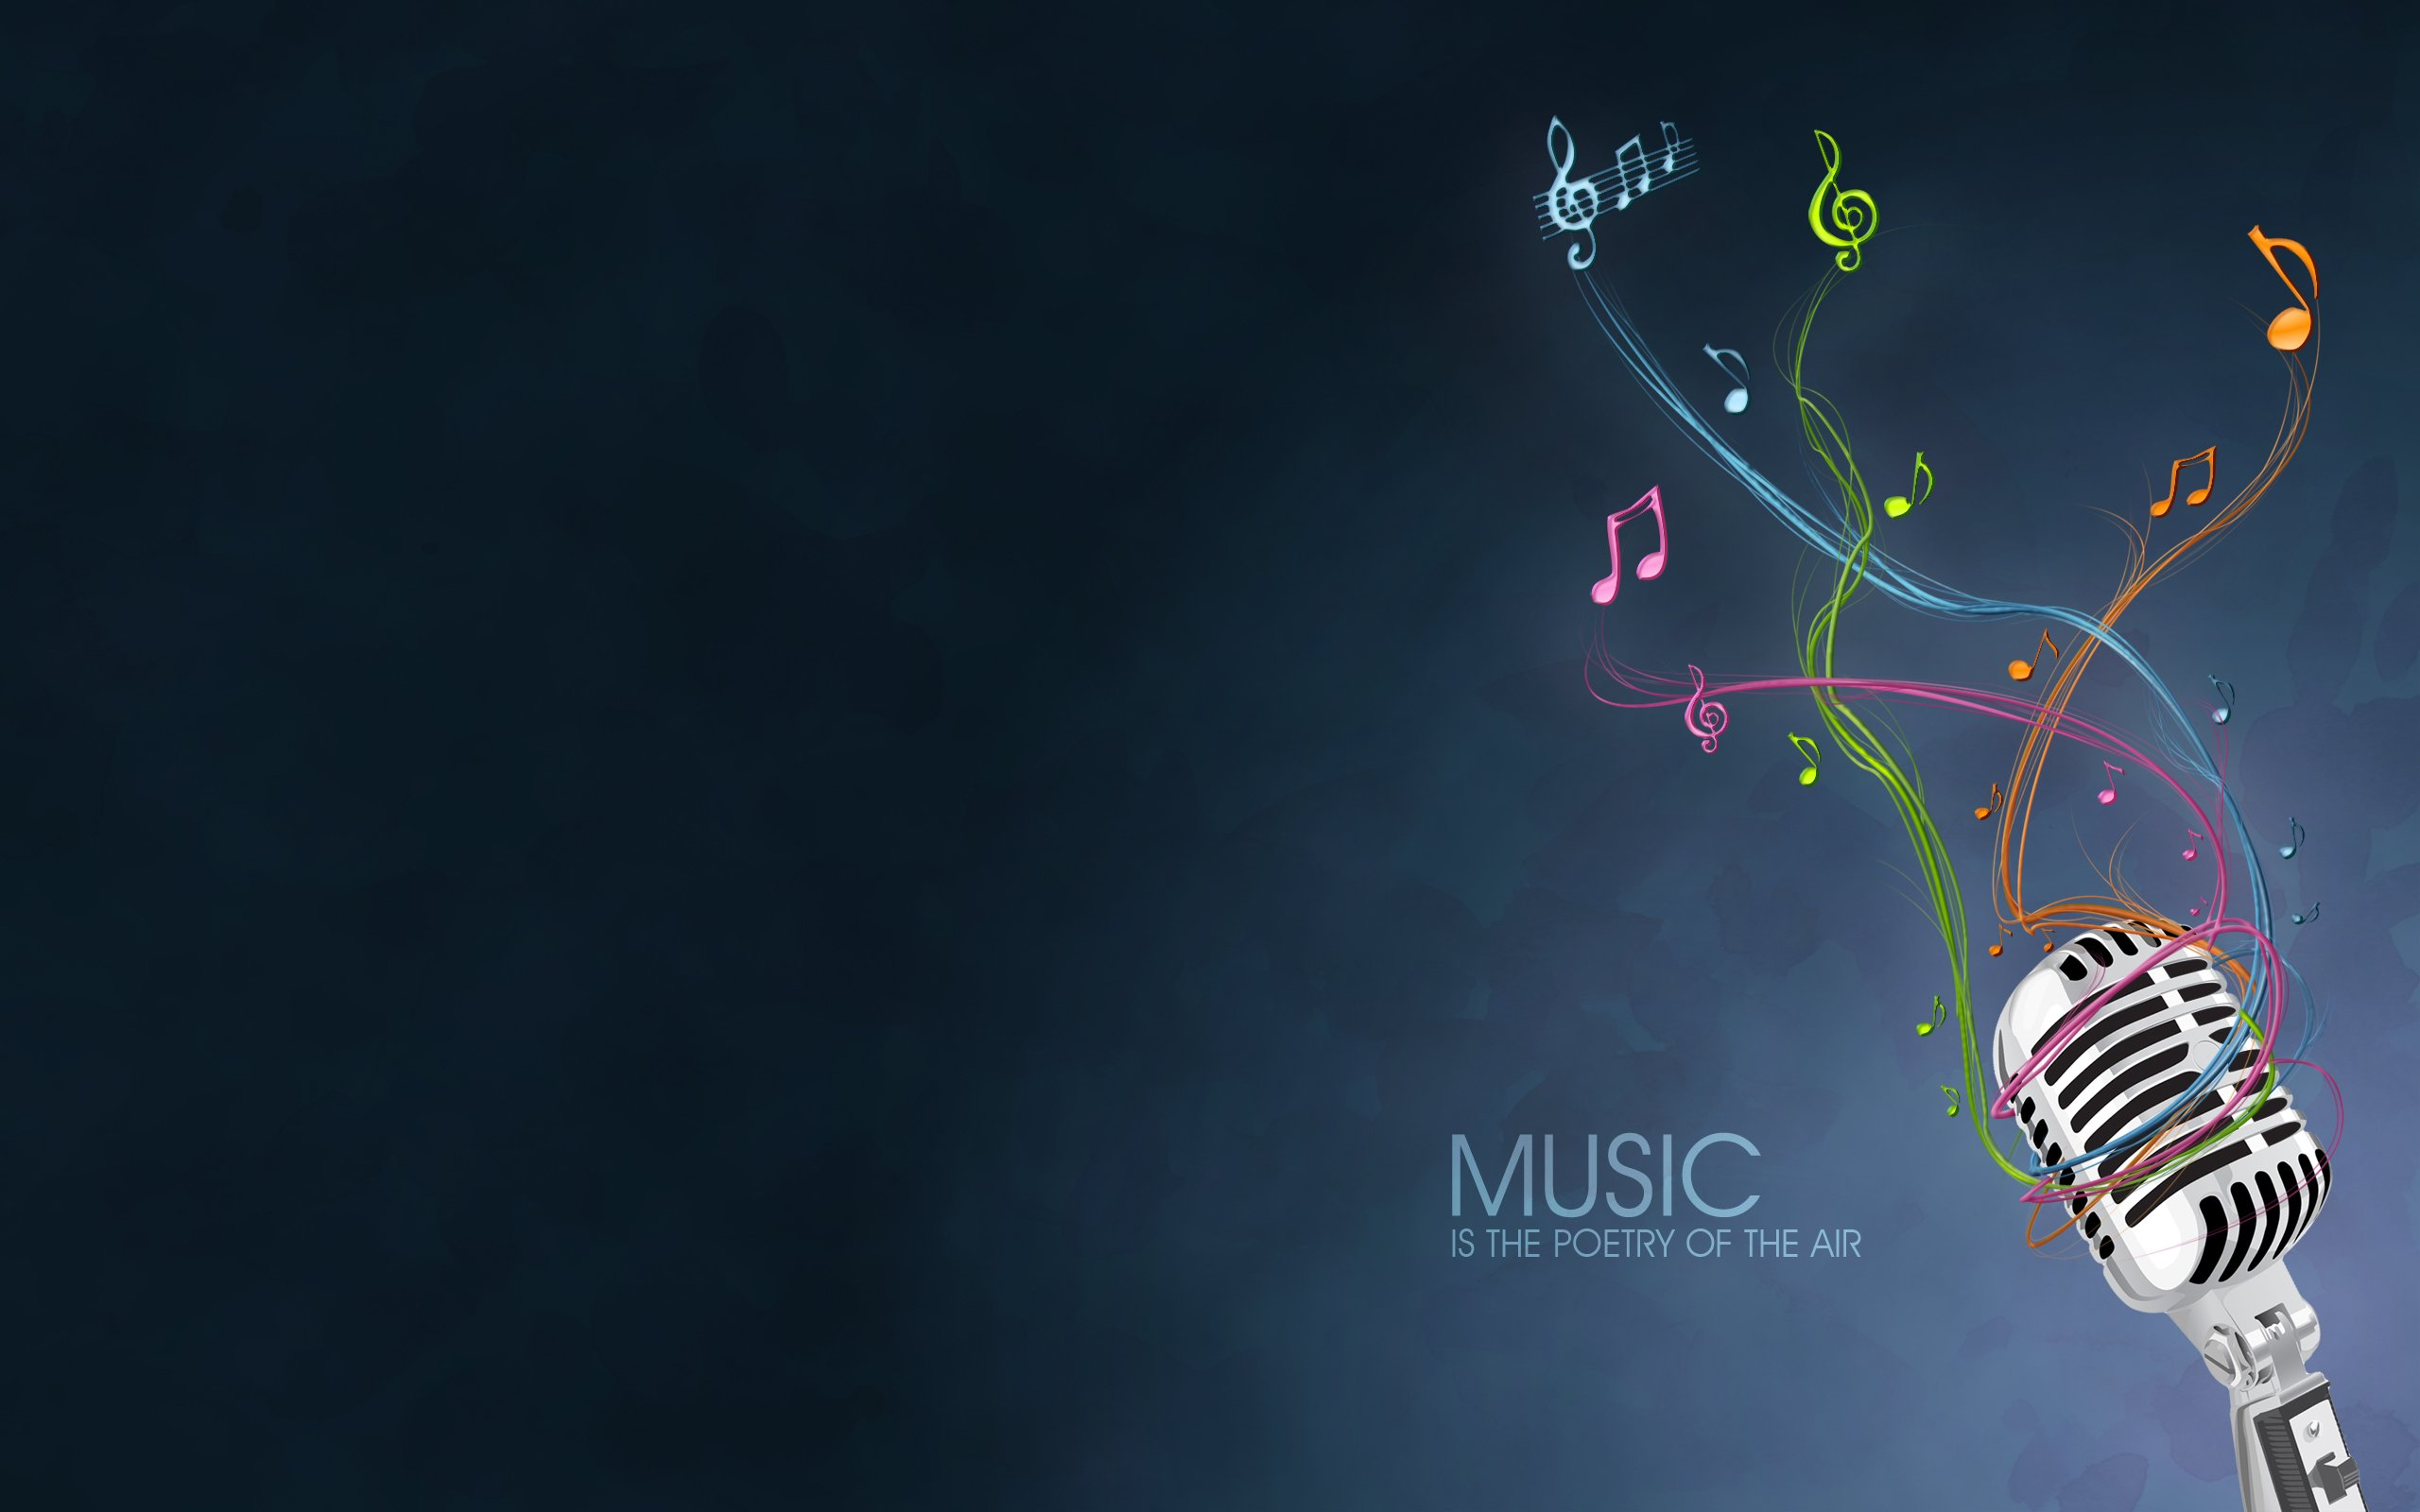 Free Music Wallpaper · Free Music Wallpaper ...